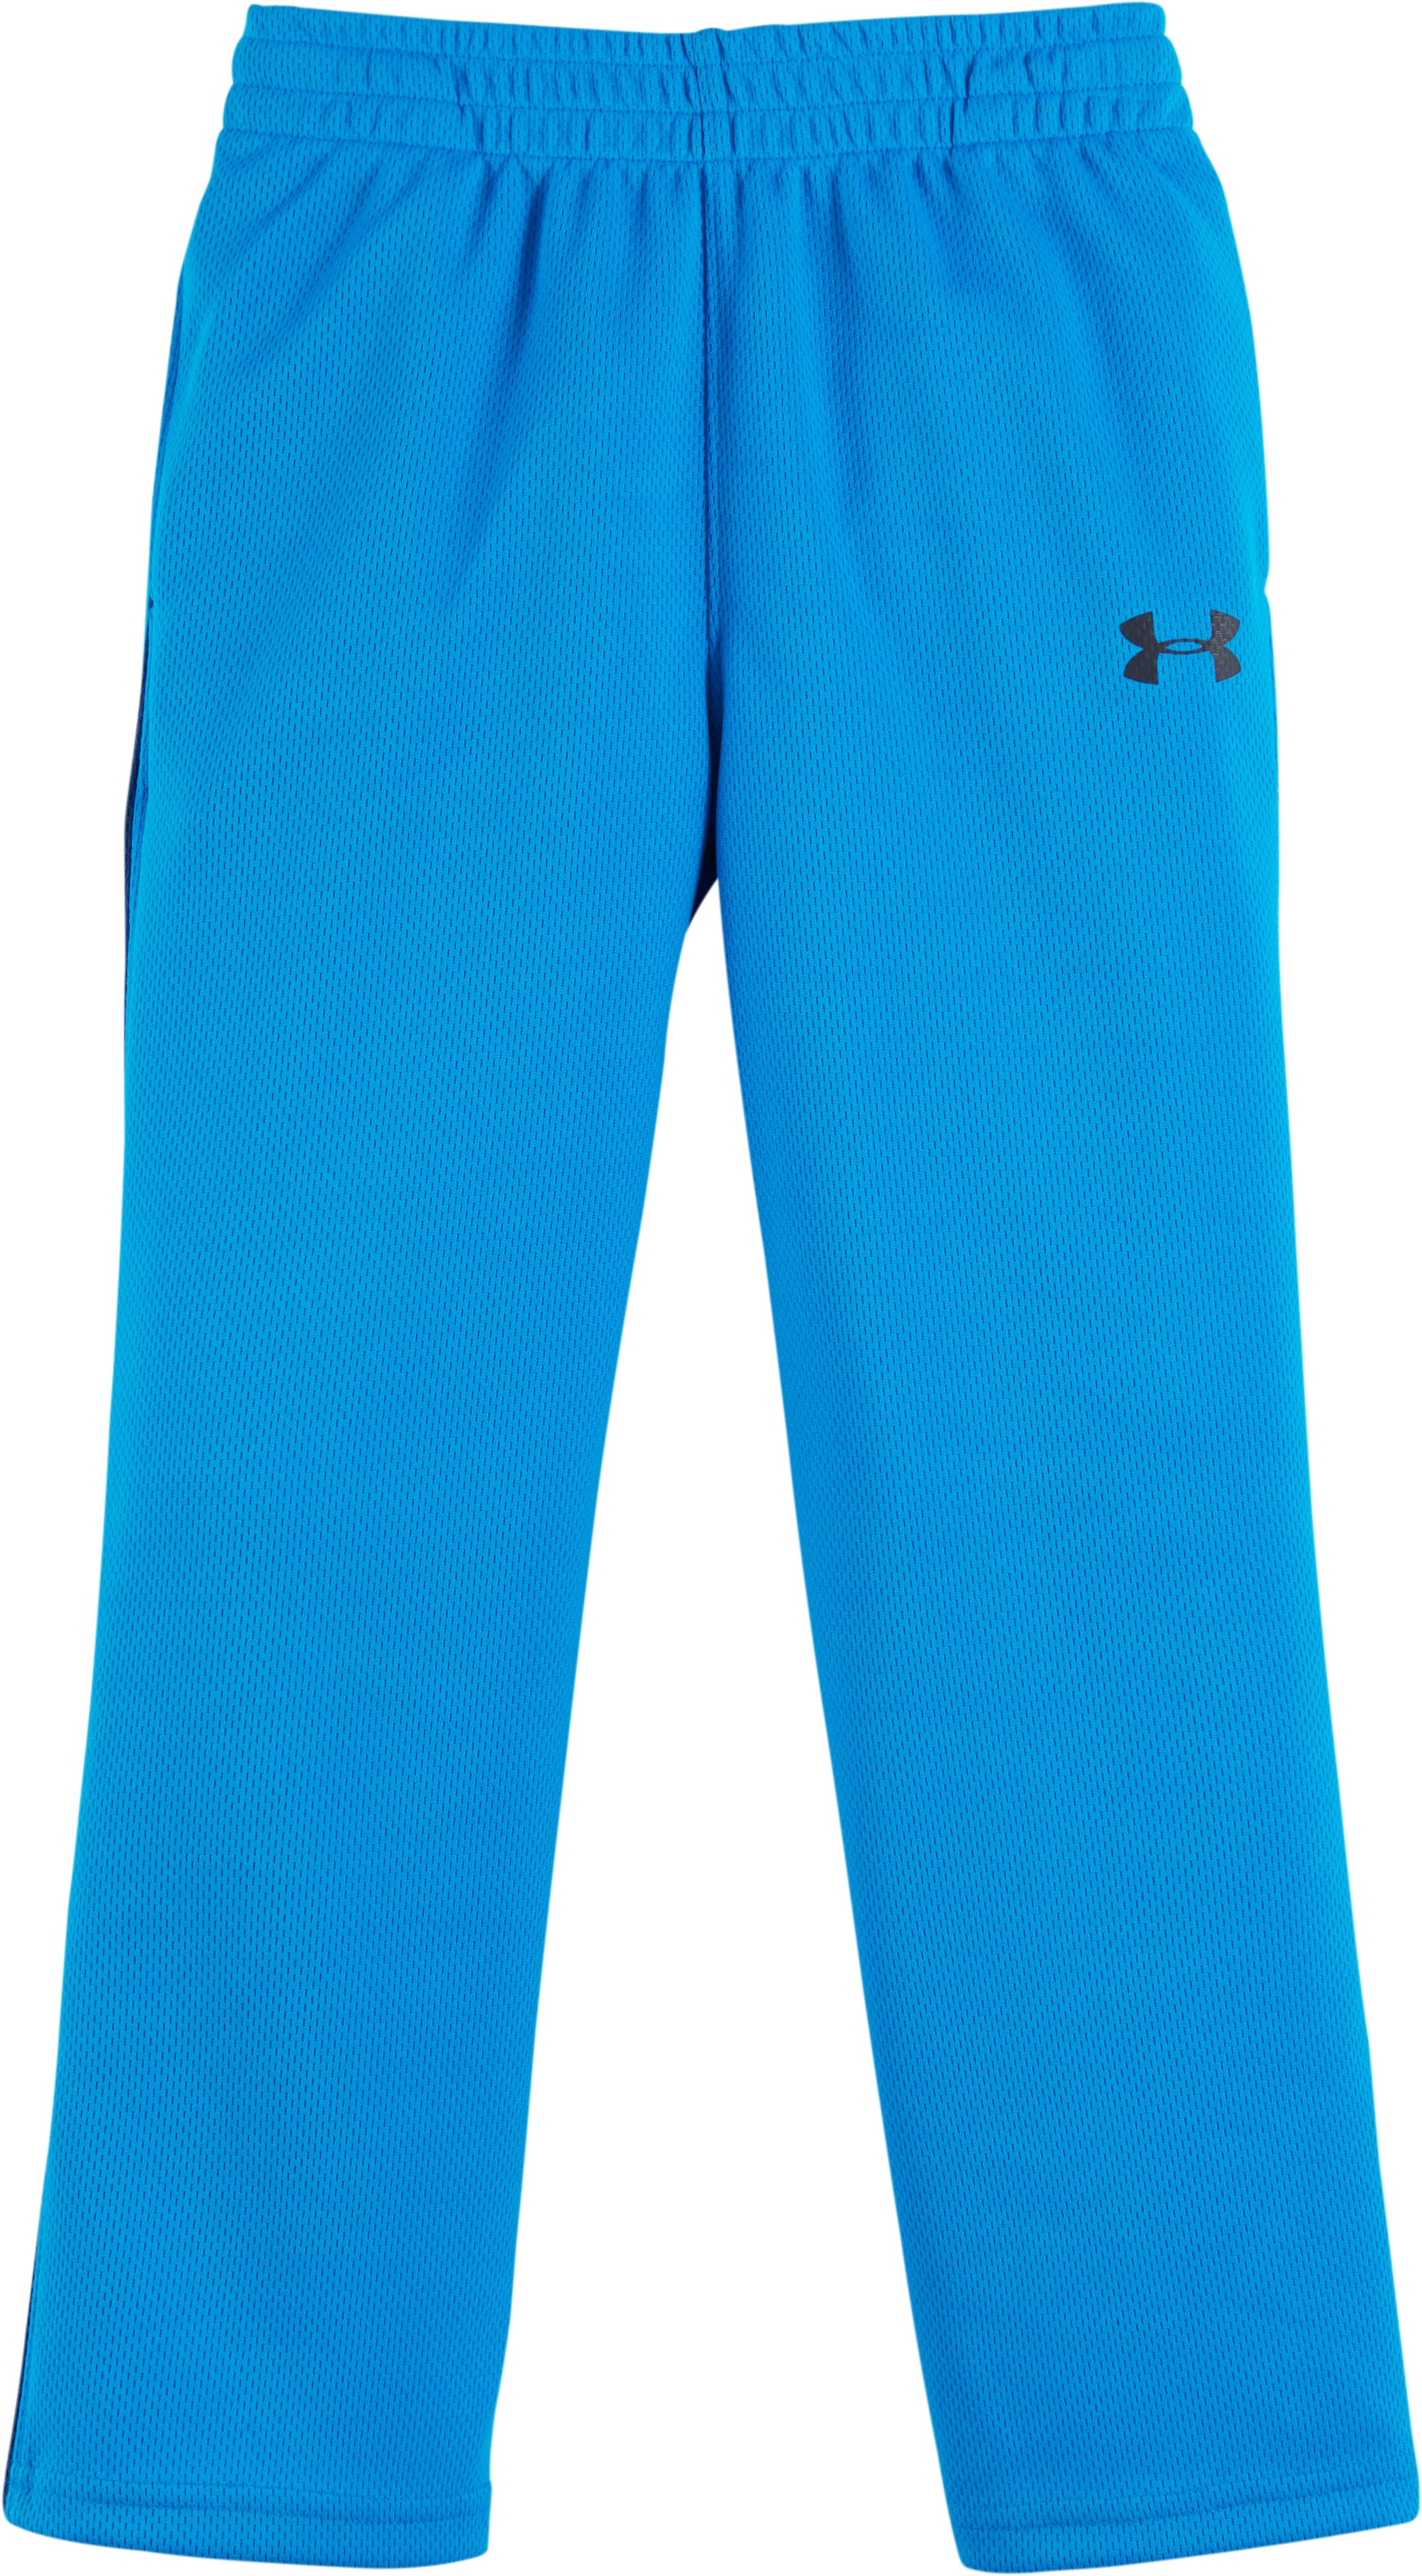 Boys' Toddler UA Midweight Champ Warm-Up Pants, BRILLIANT BLUE, zoomed image